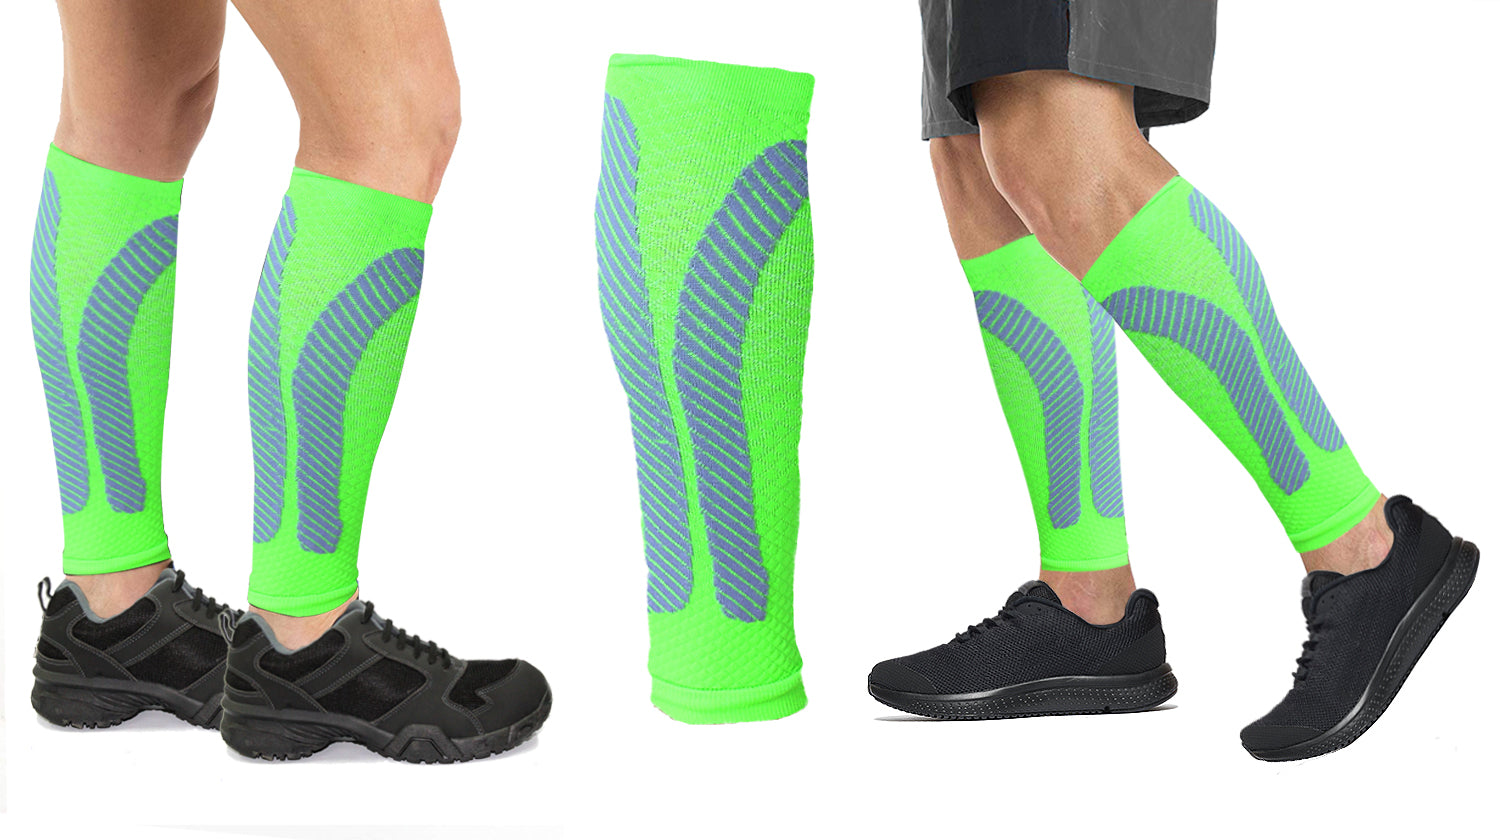 Xtreme Gear Calf Compression Sleeves (2-Pack)